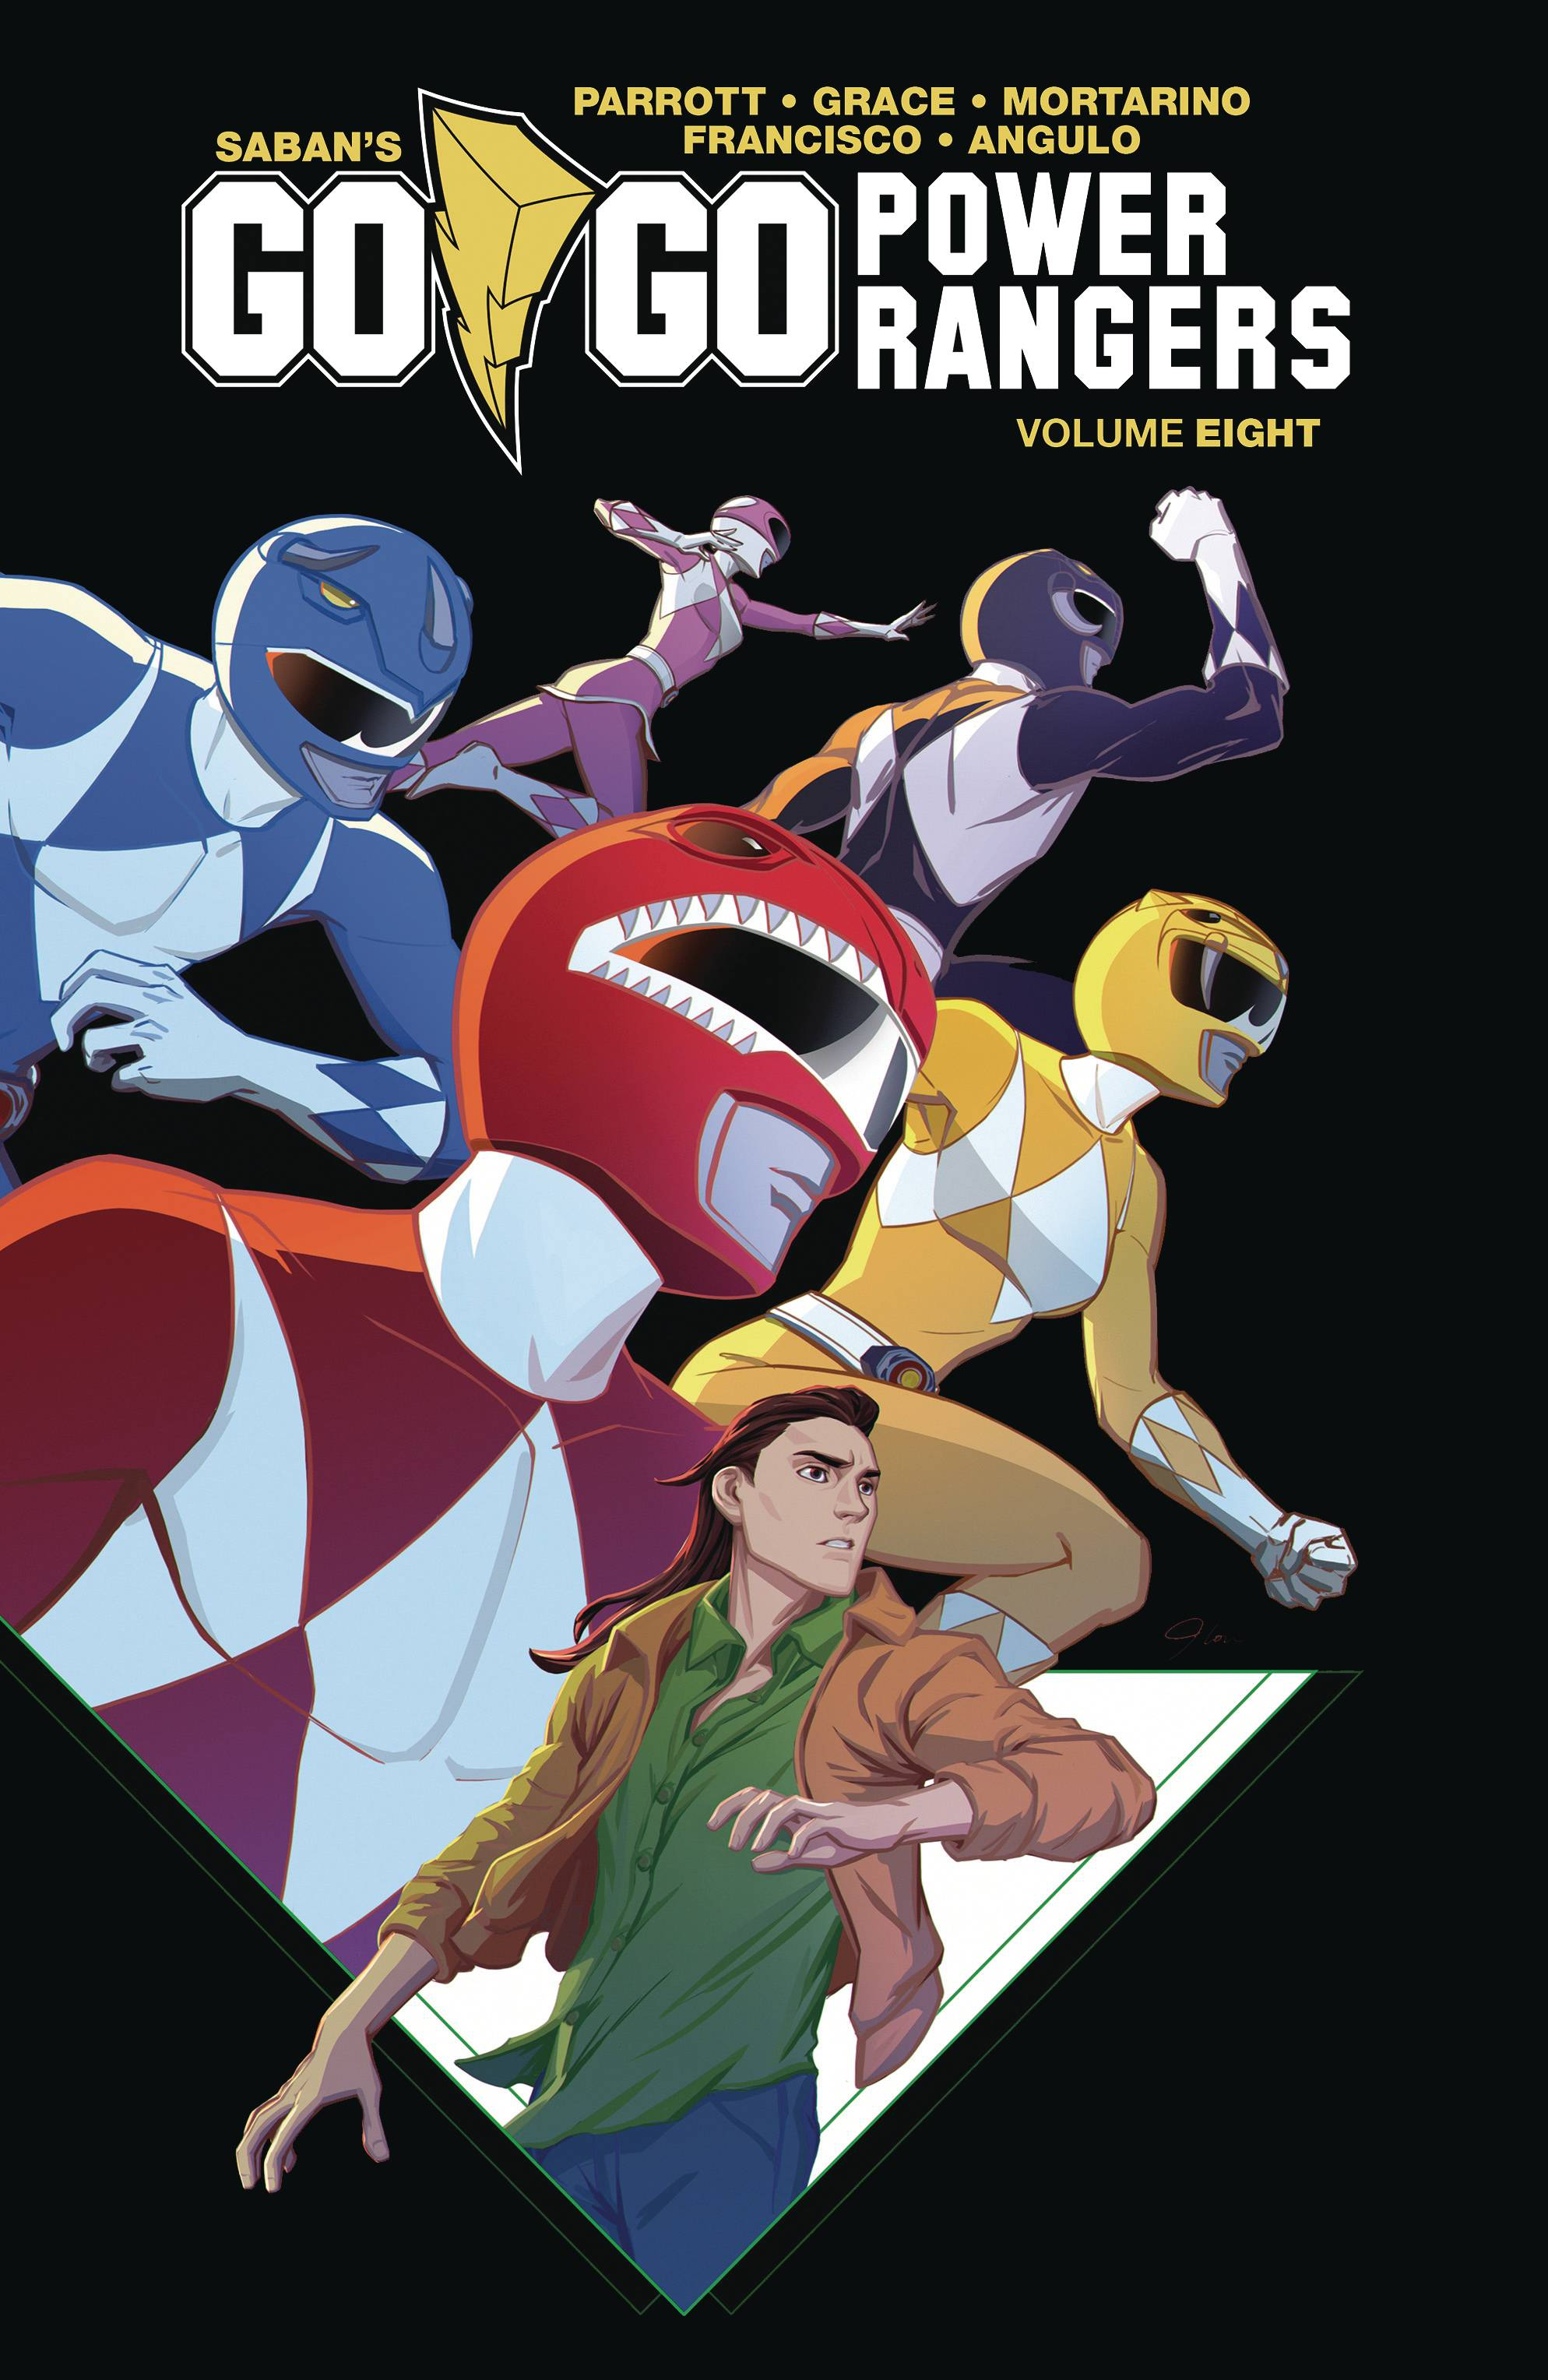 GO GO POWER RANGERS TP VOL 08